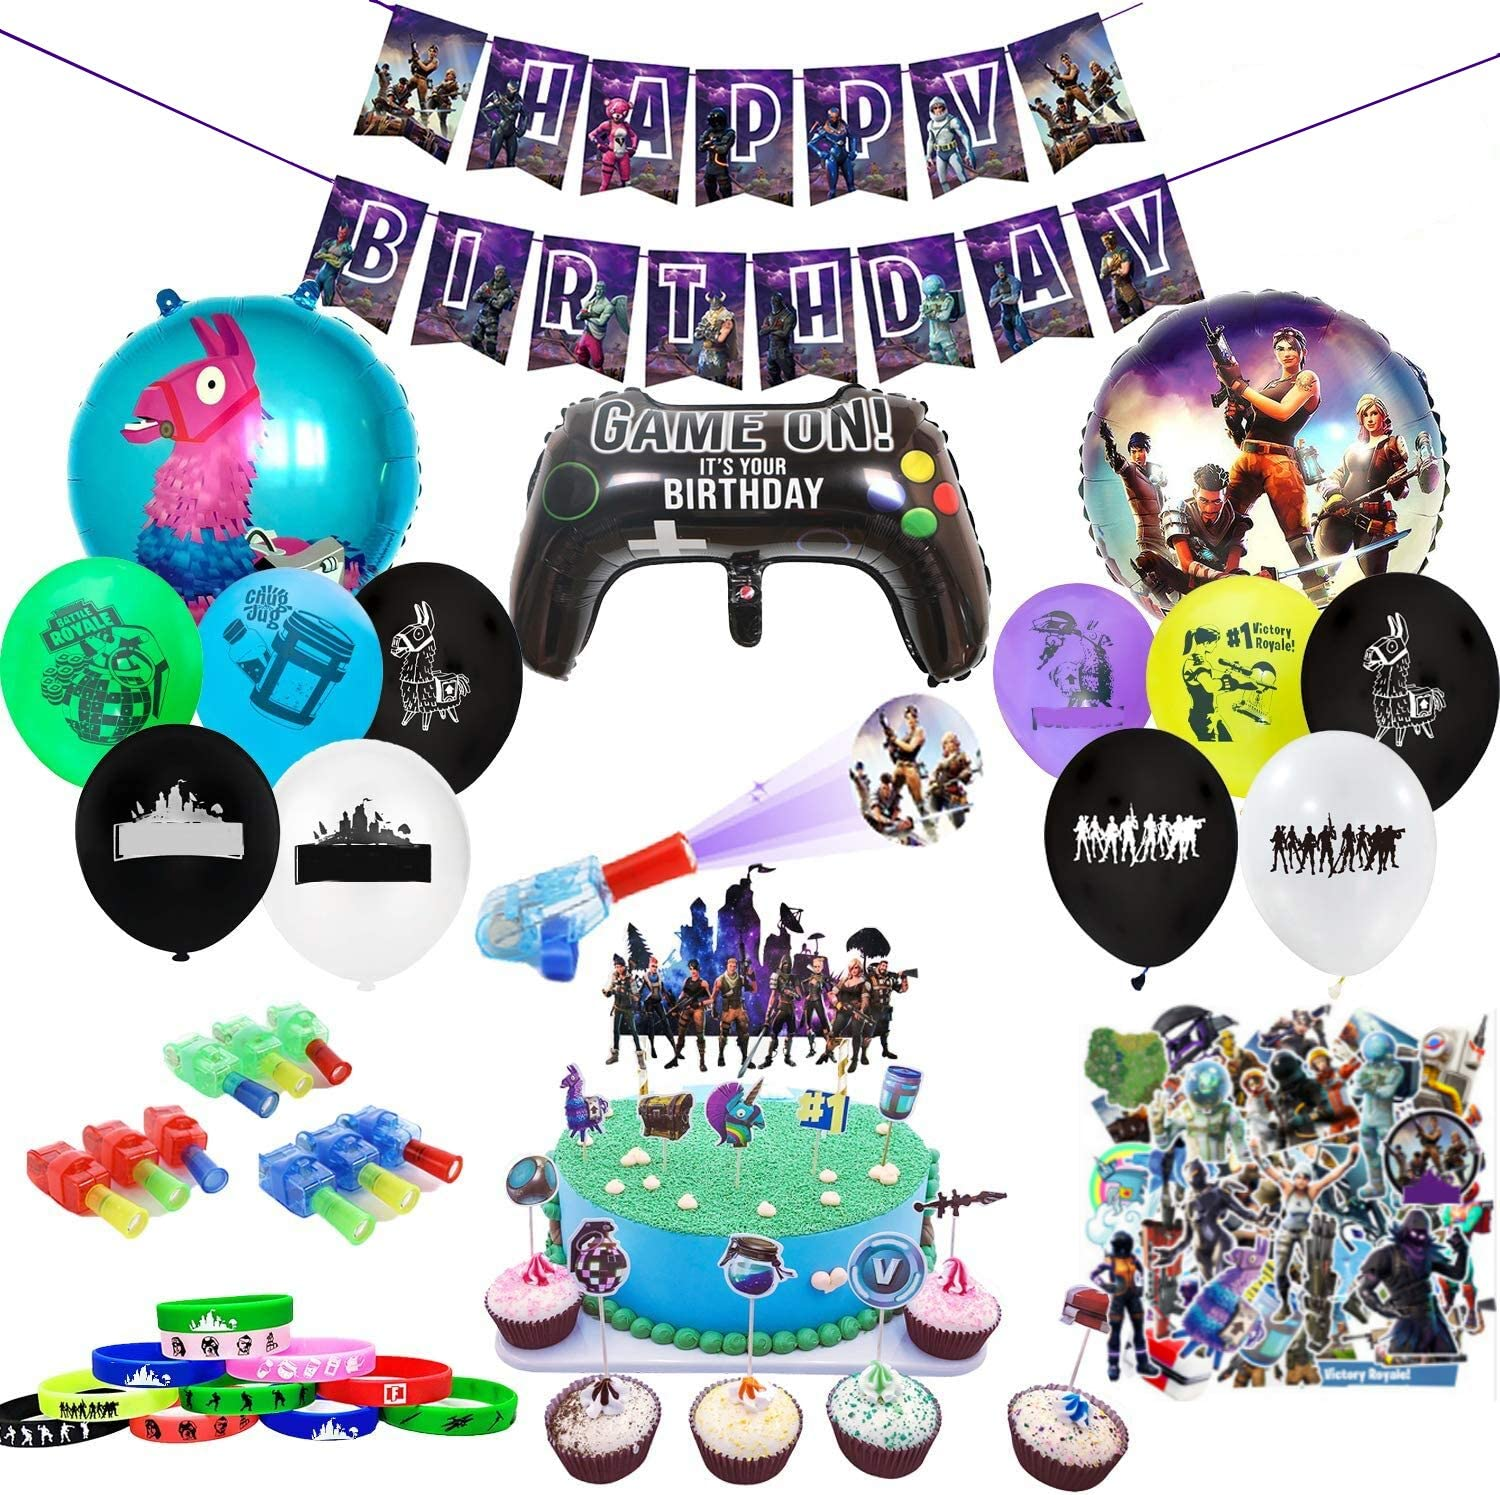 Birthday Party Supplies for Game Fans, 123pcs Gaming Theme Party Decorations - include Balloons, Banner,Bracelets,Finger Lights,Stickers,Cake Toppers, Cupcake Toppers11